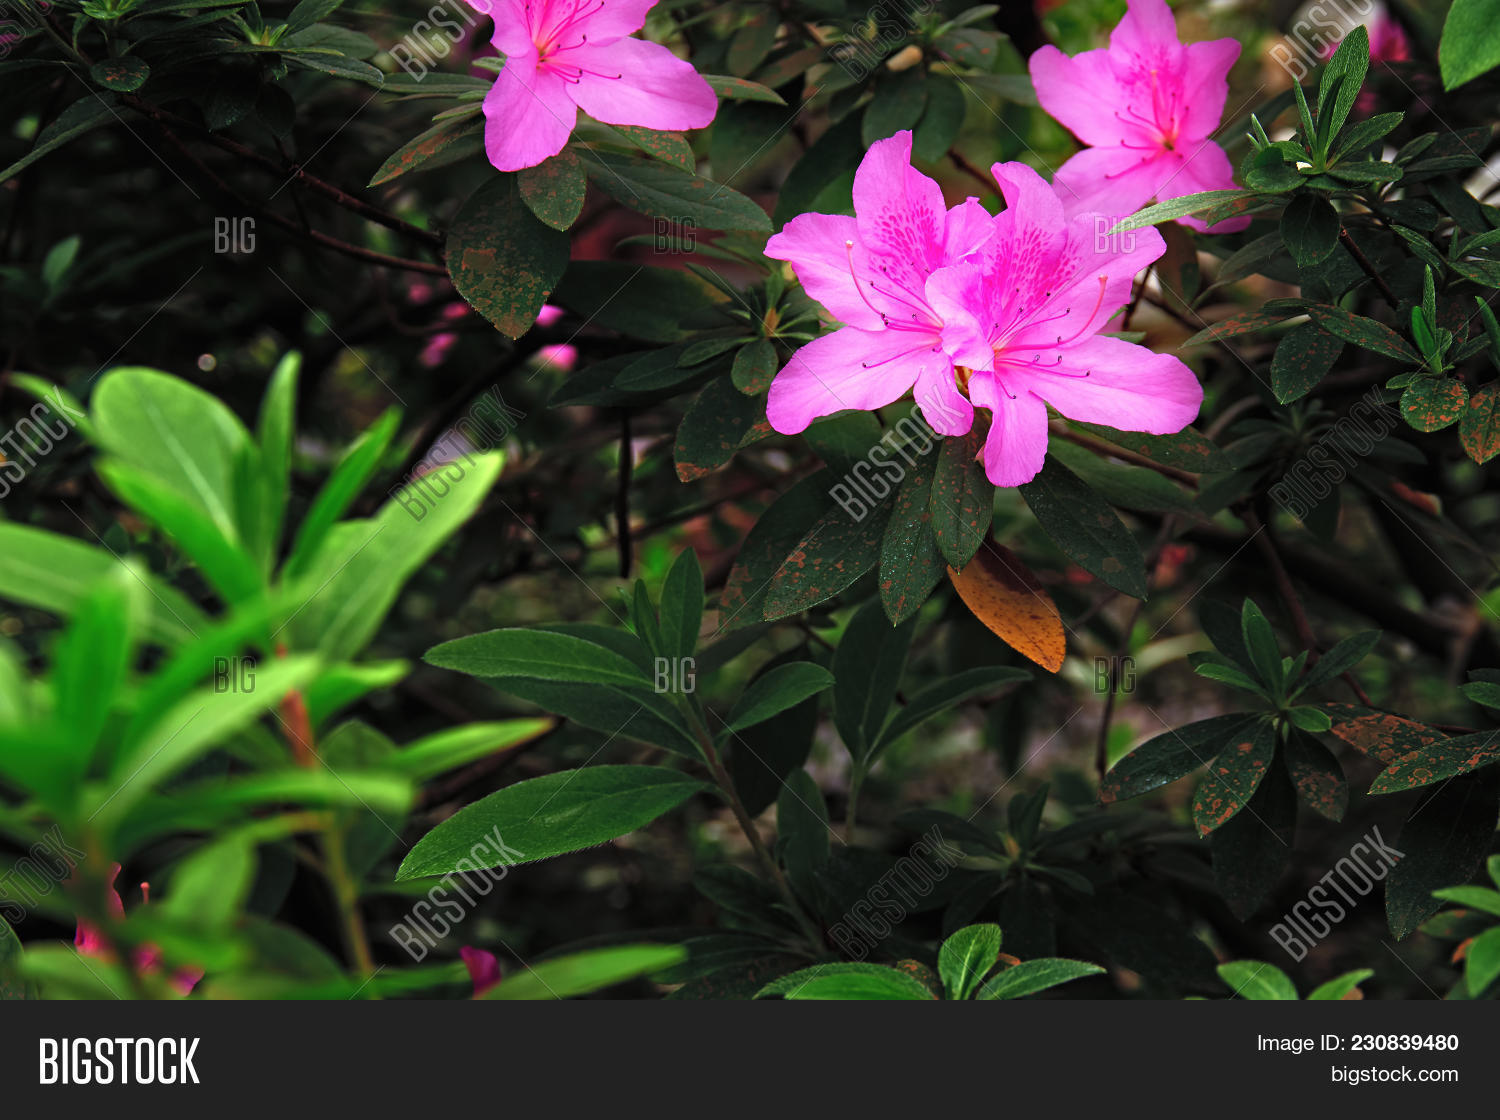 Brightly Pink Flowers Image Photo Free Trial Bigstock